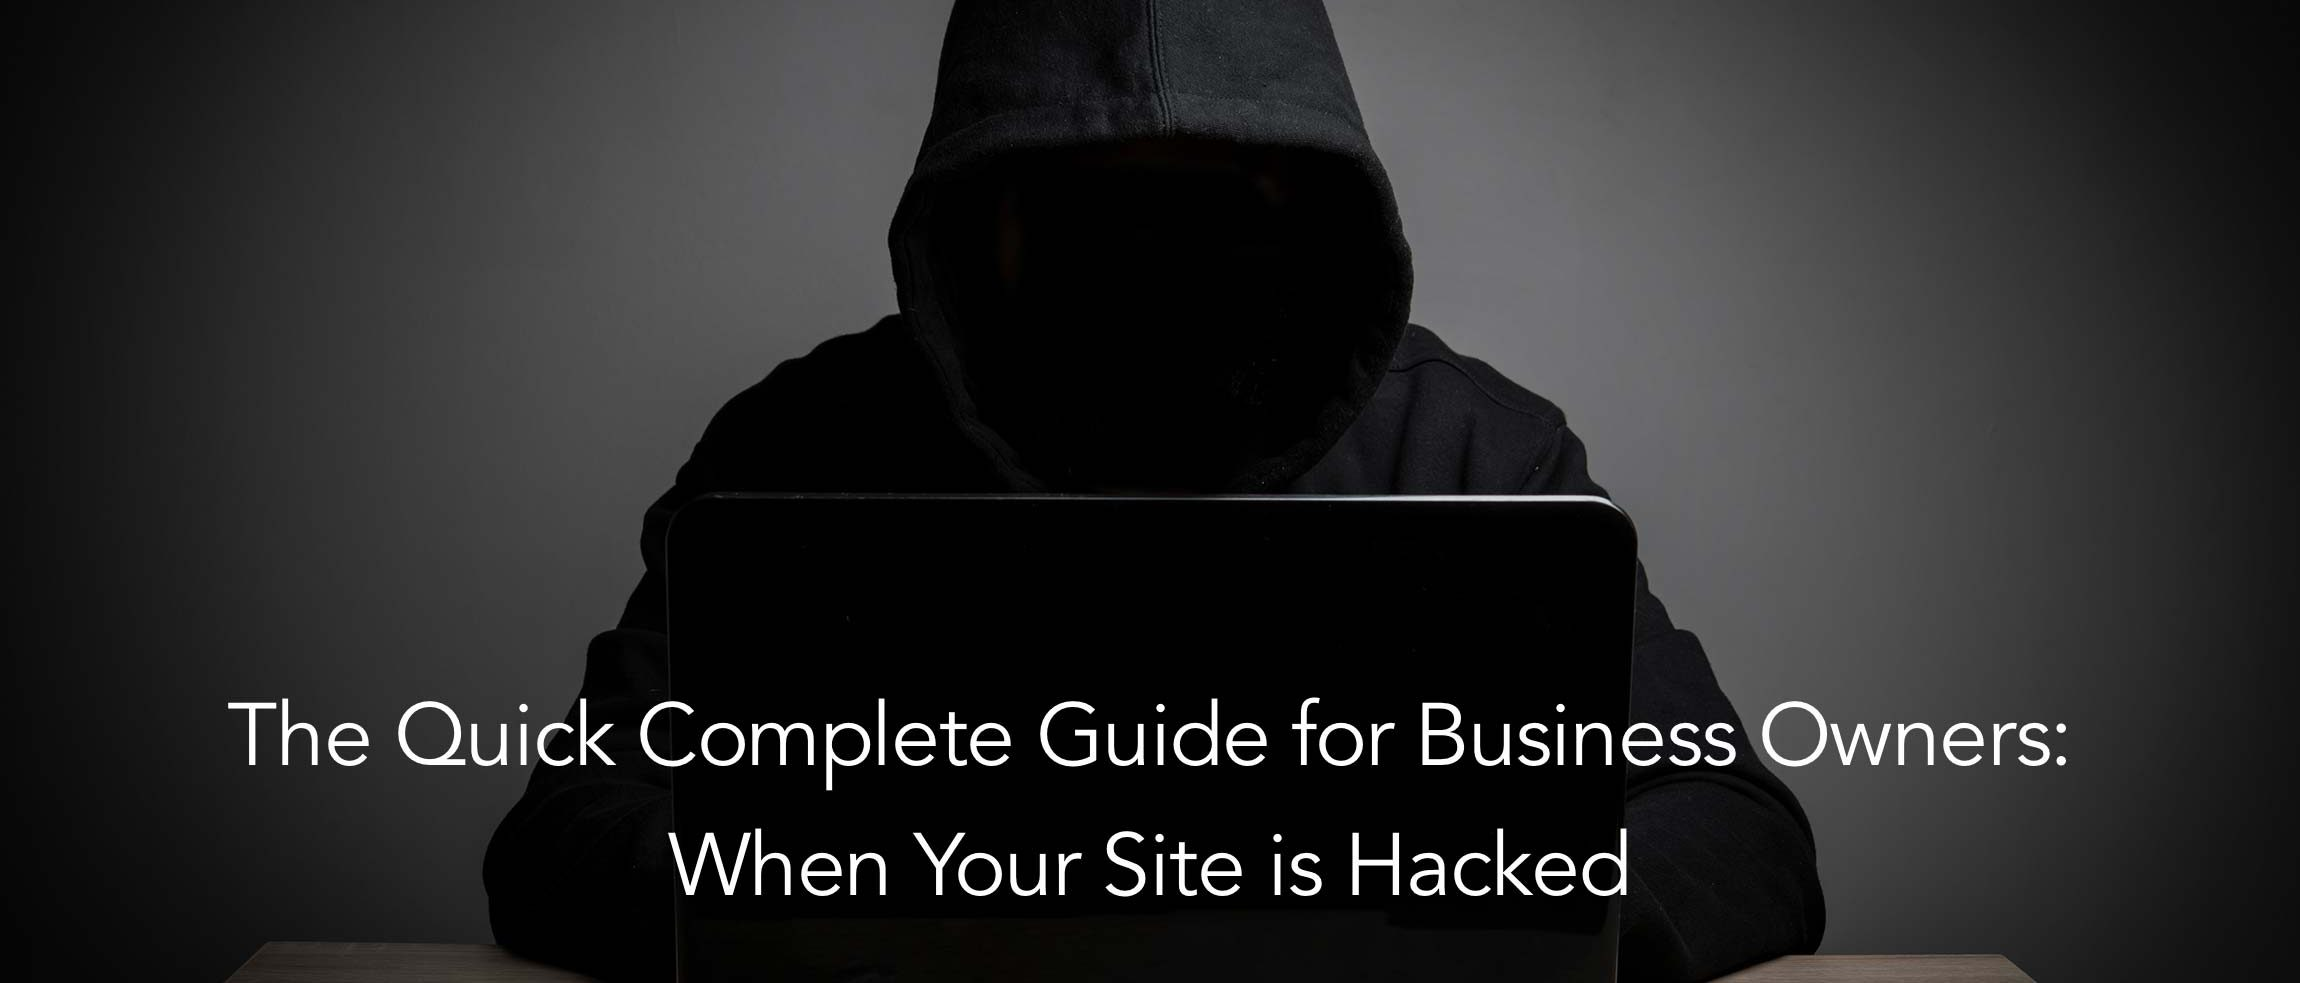 Website Security - What to do when your site is hacked